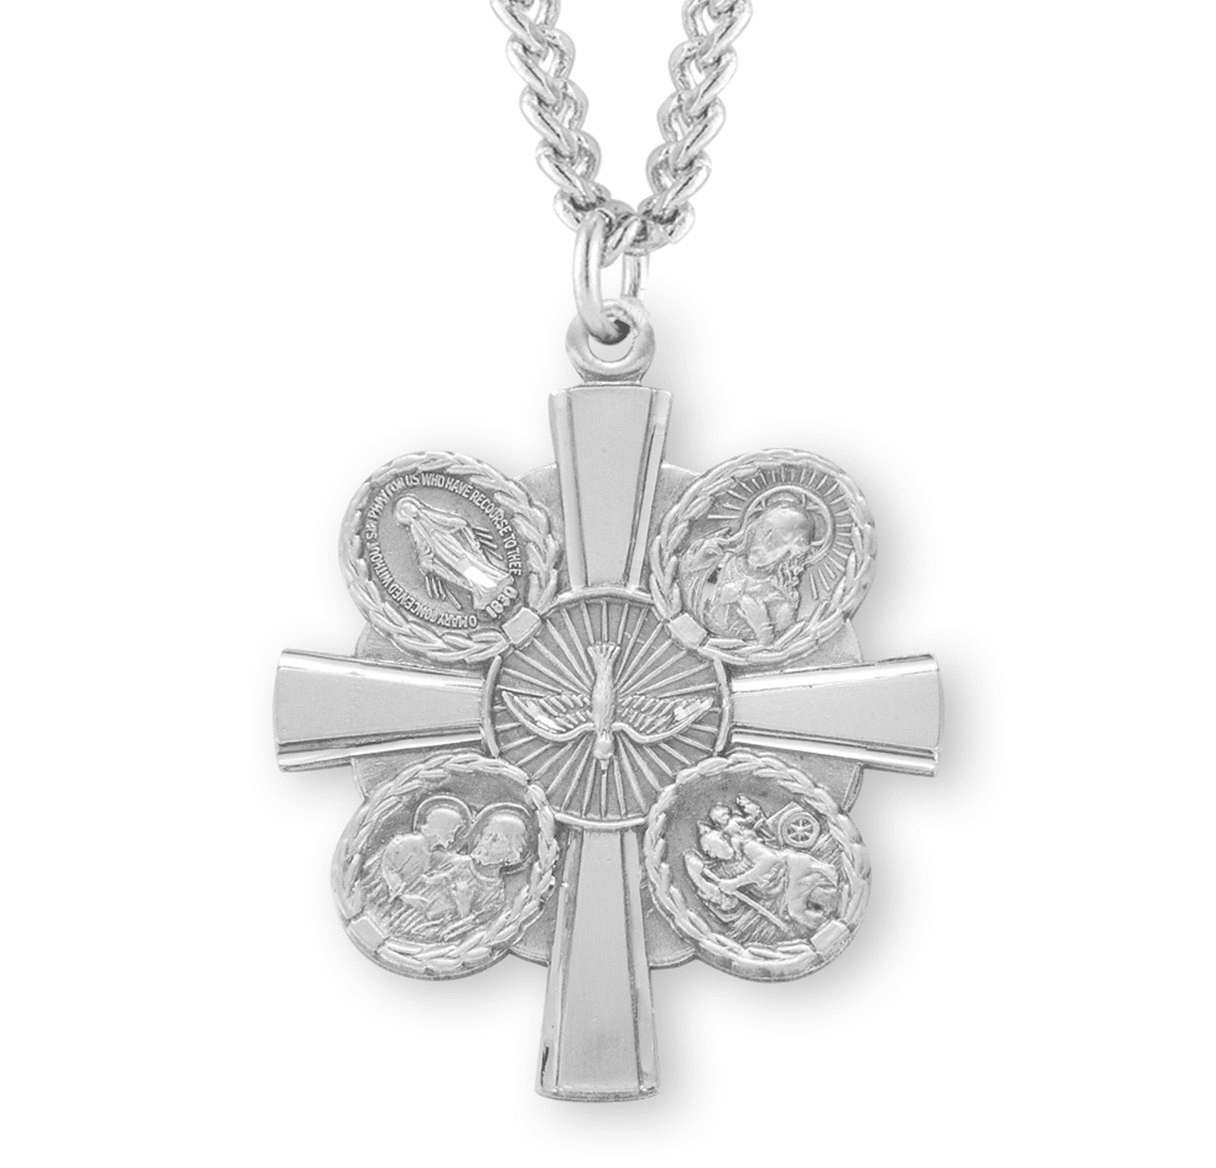 Beautiful Cross Sterling Silver Four-Way Medal Necklace by HMH Religious